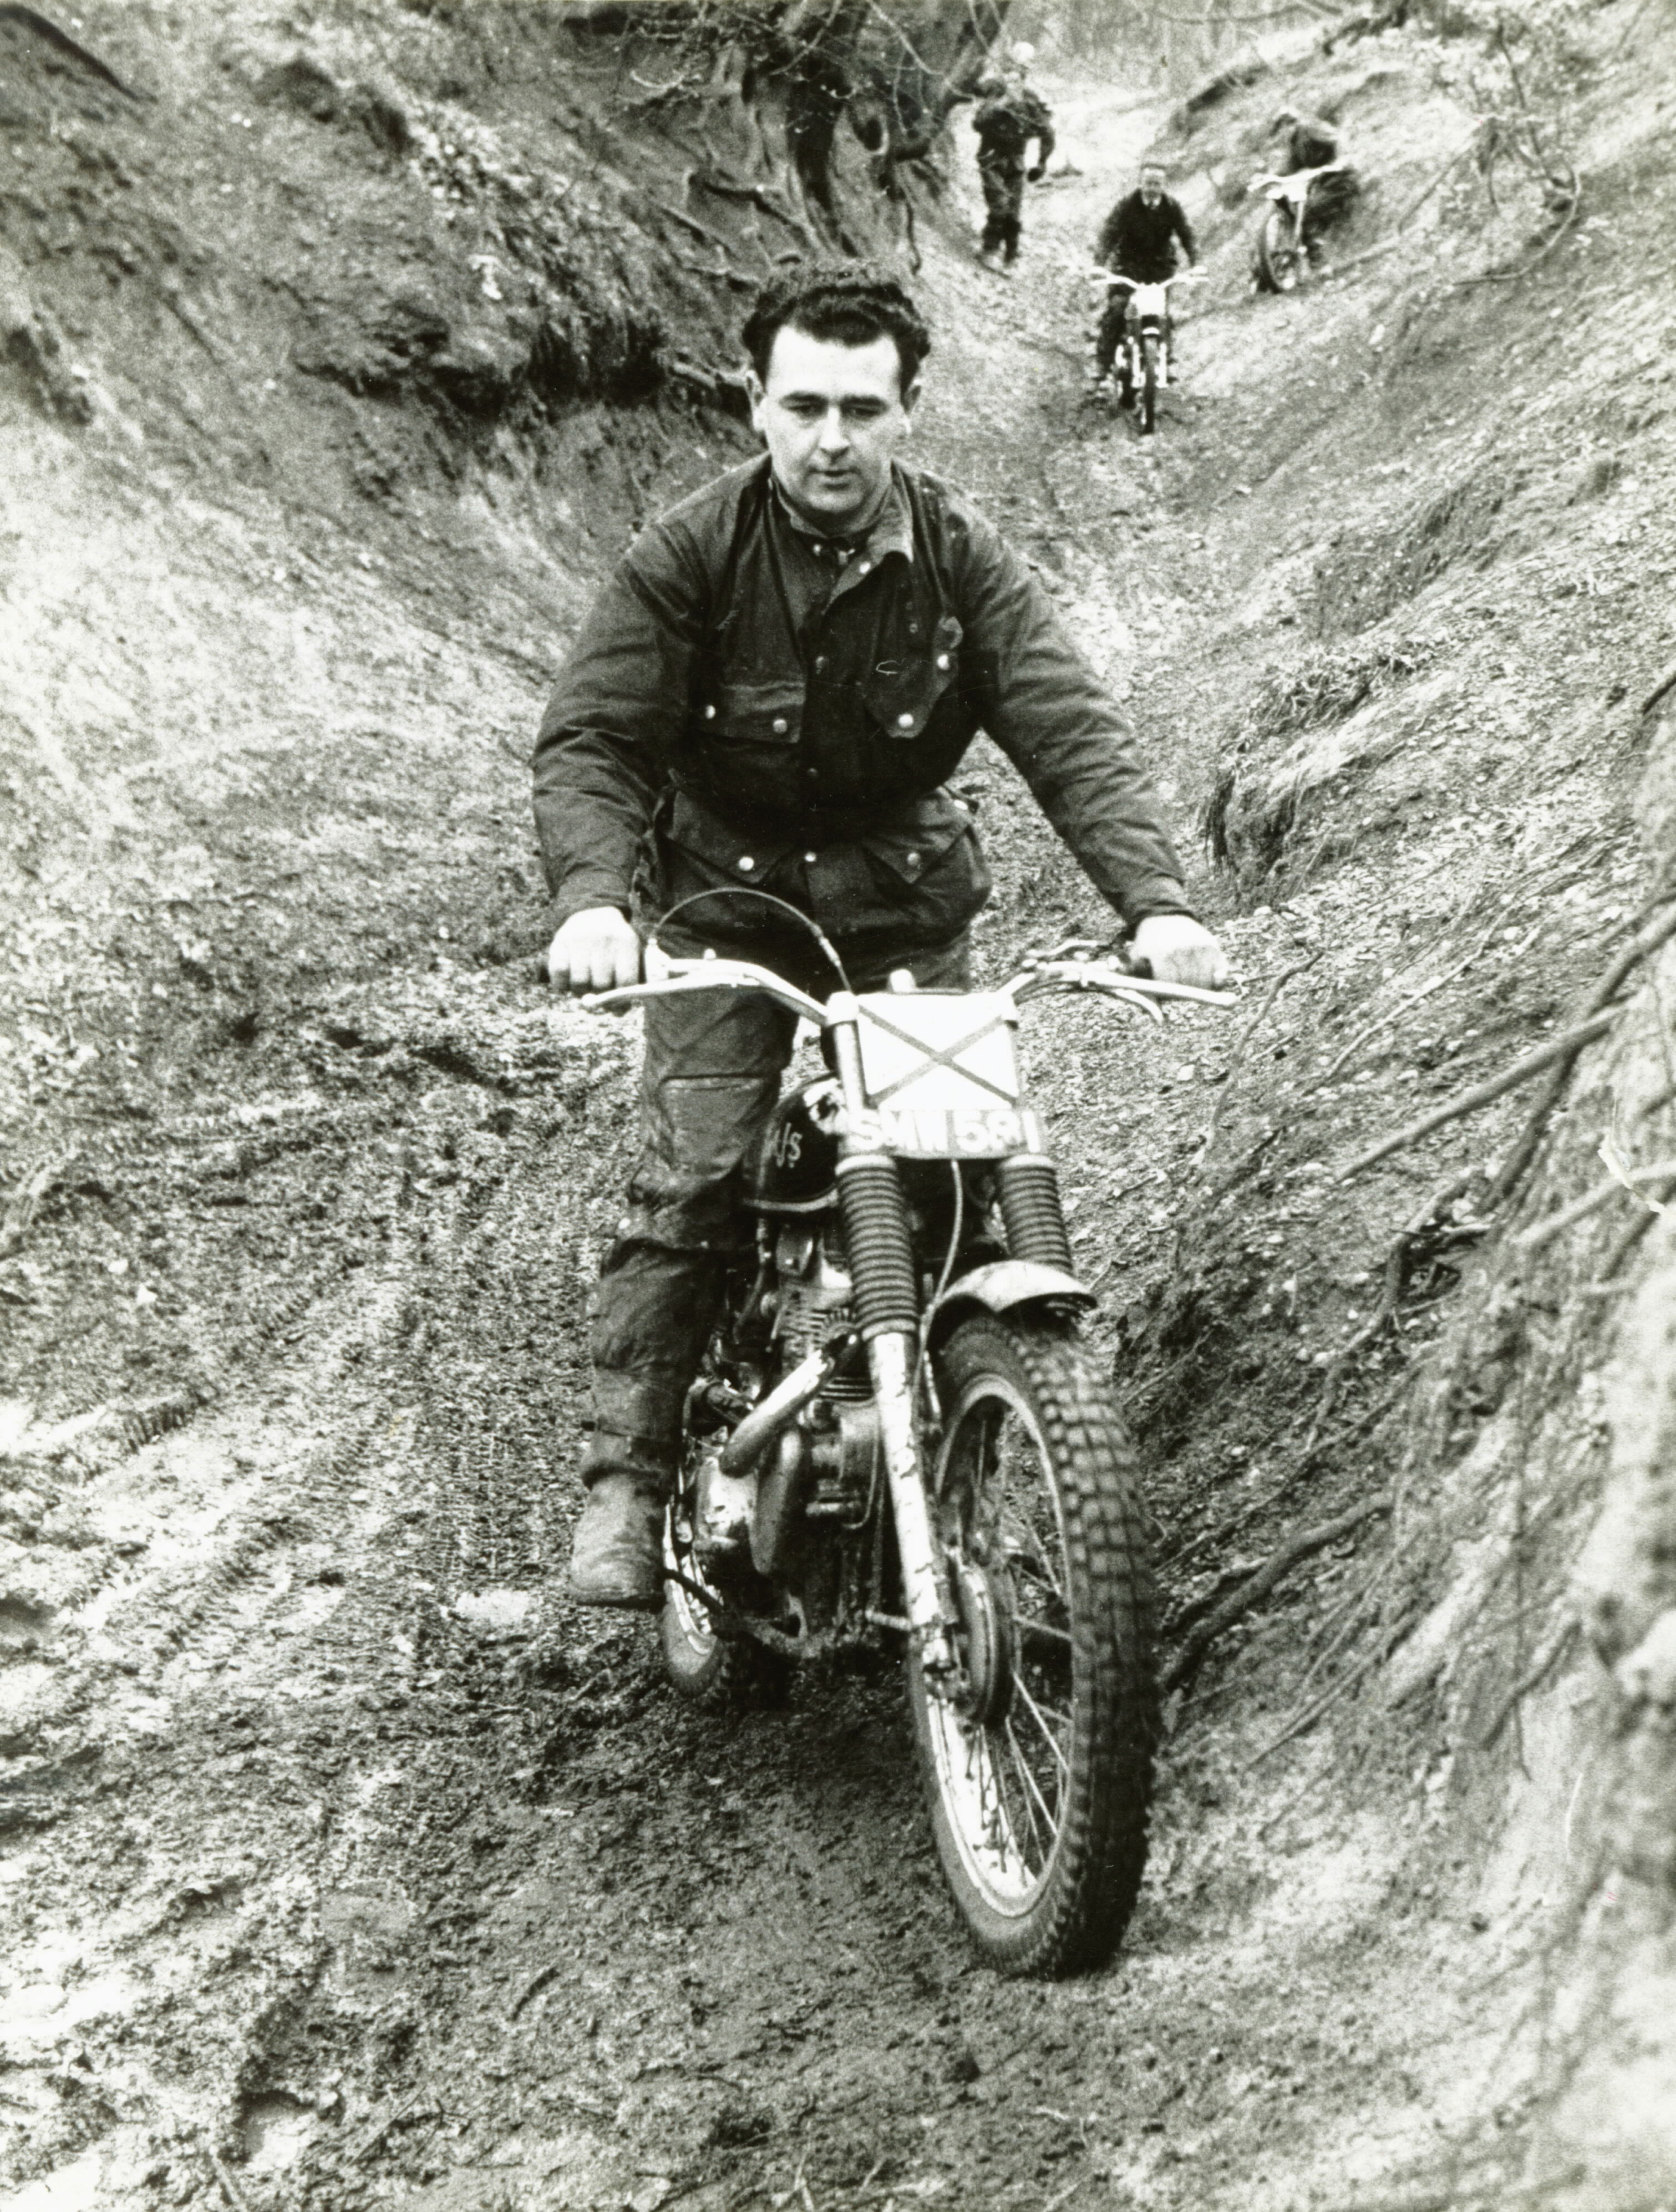 Sidcup 60 Trial - AJS - Bert Thorn in background